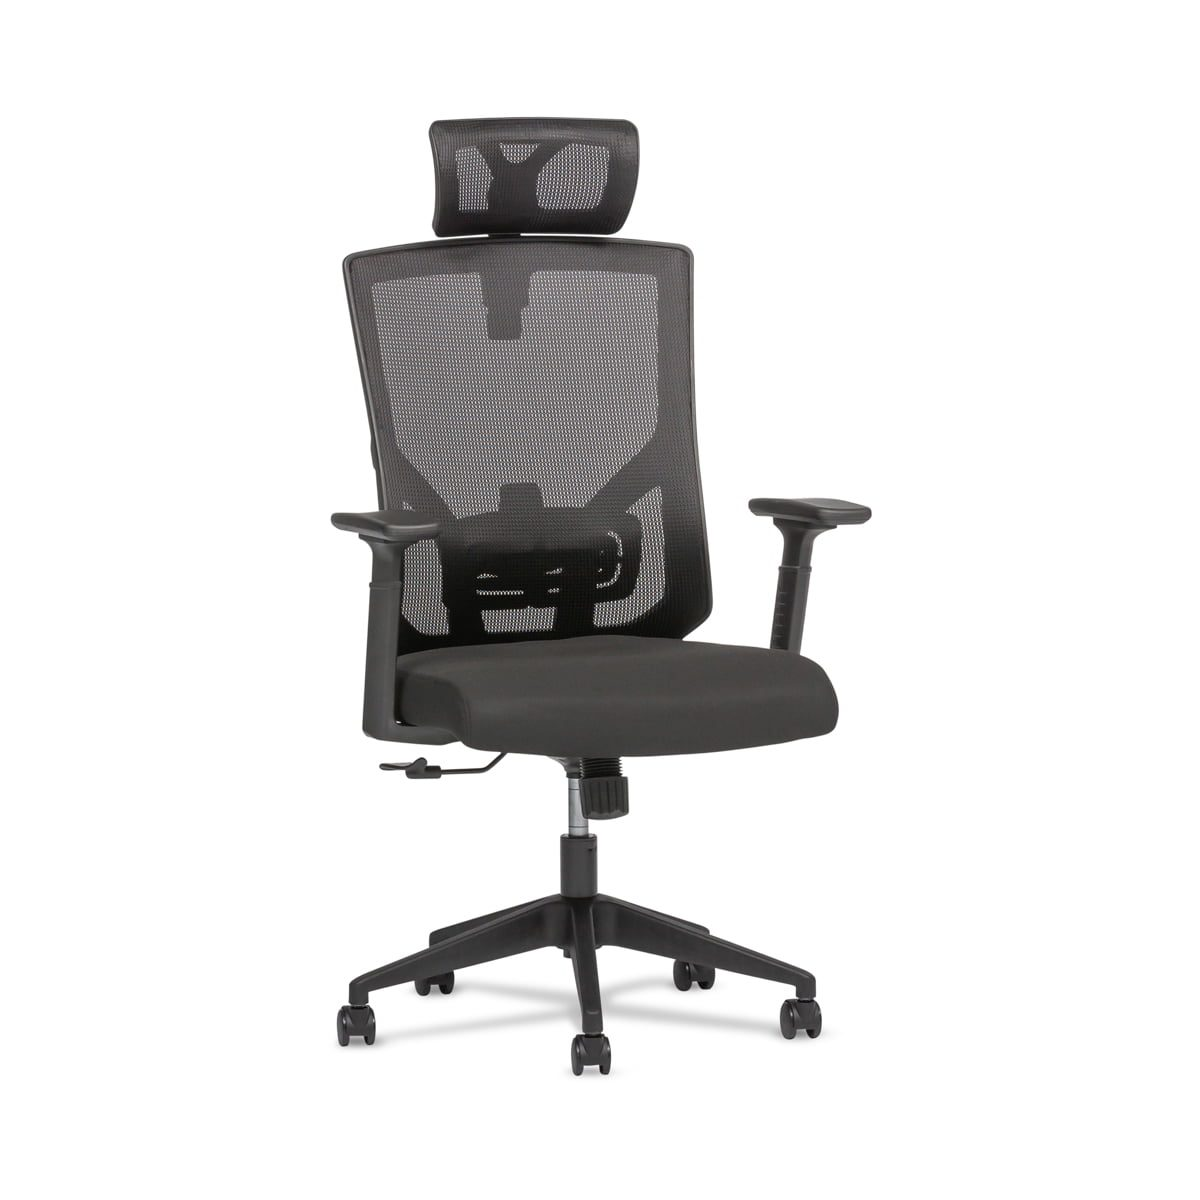 black mesh office chair with headrest